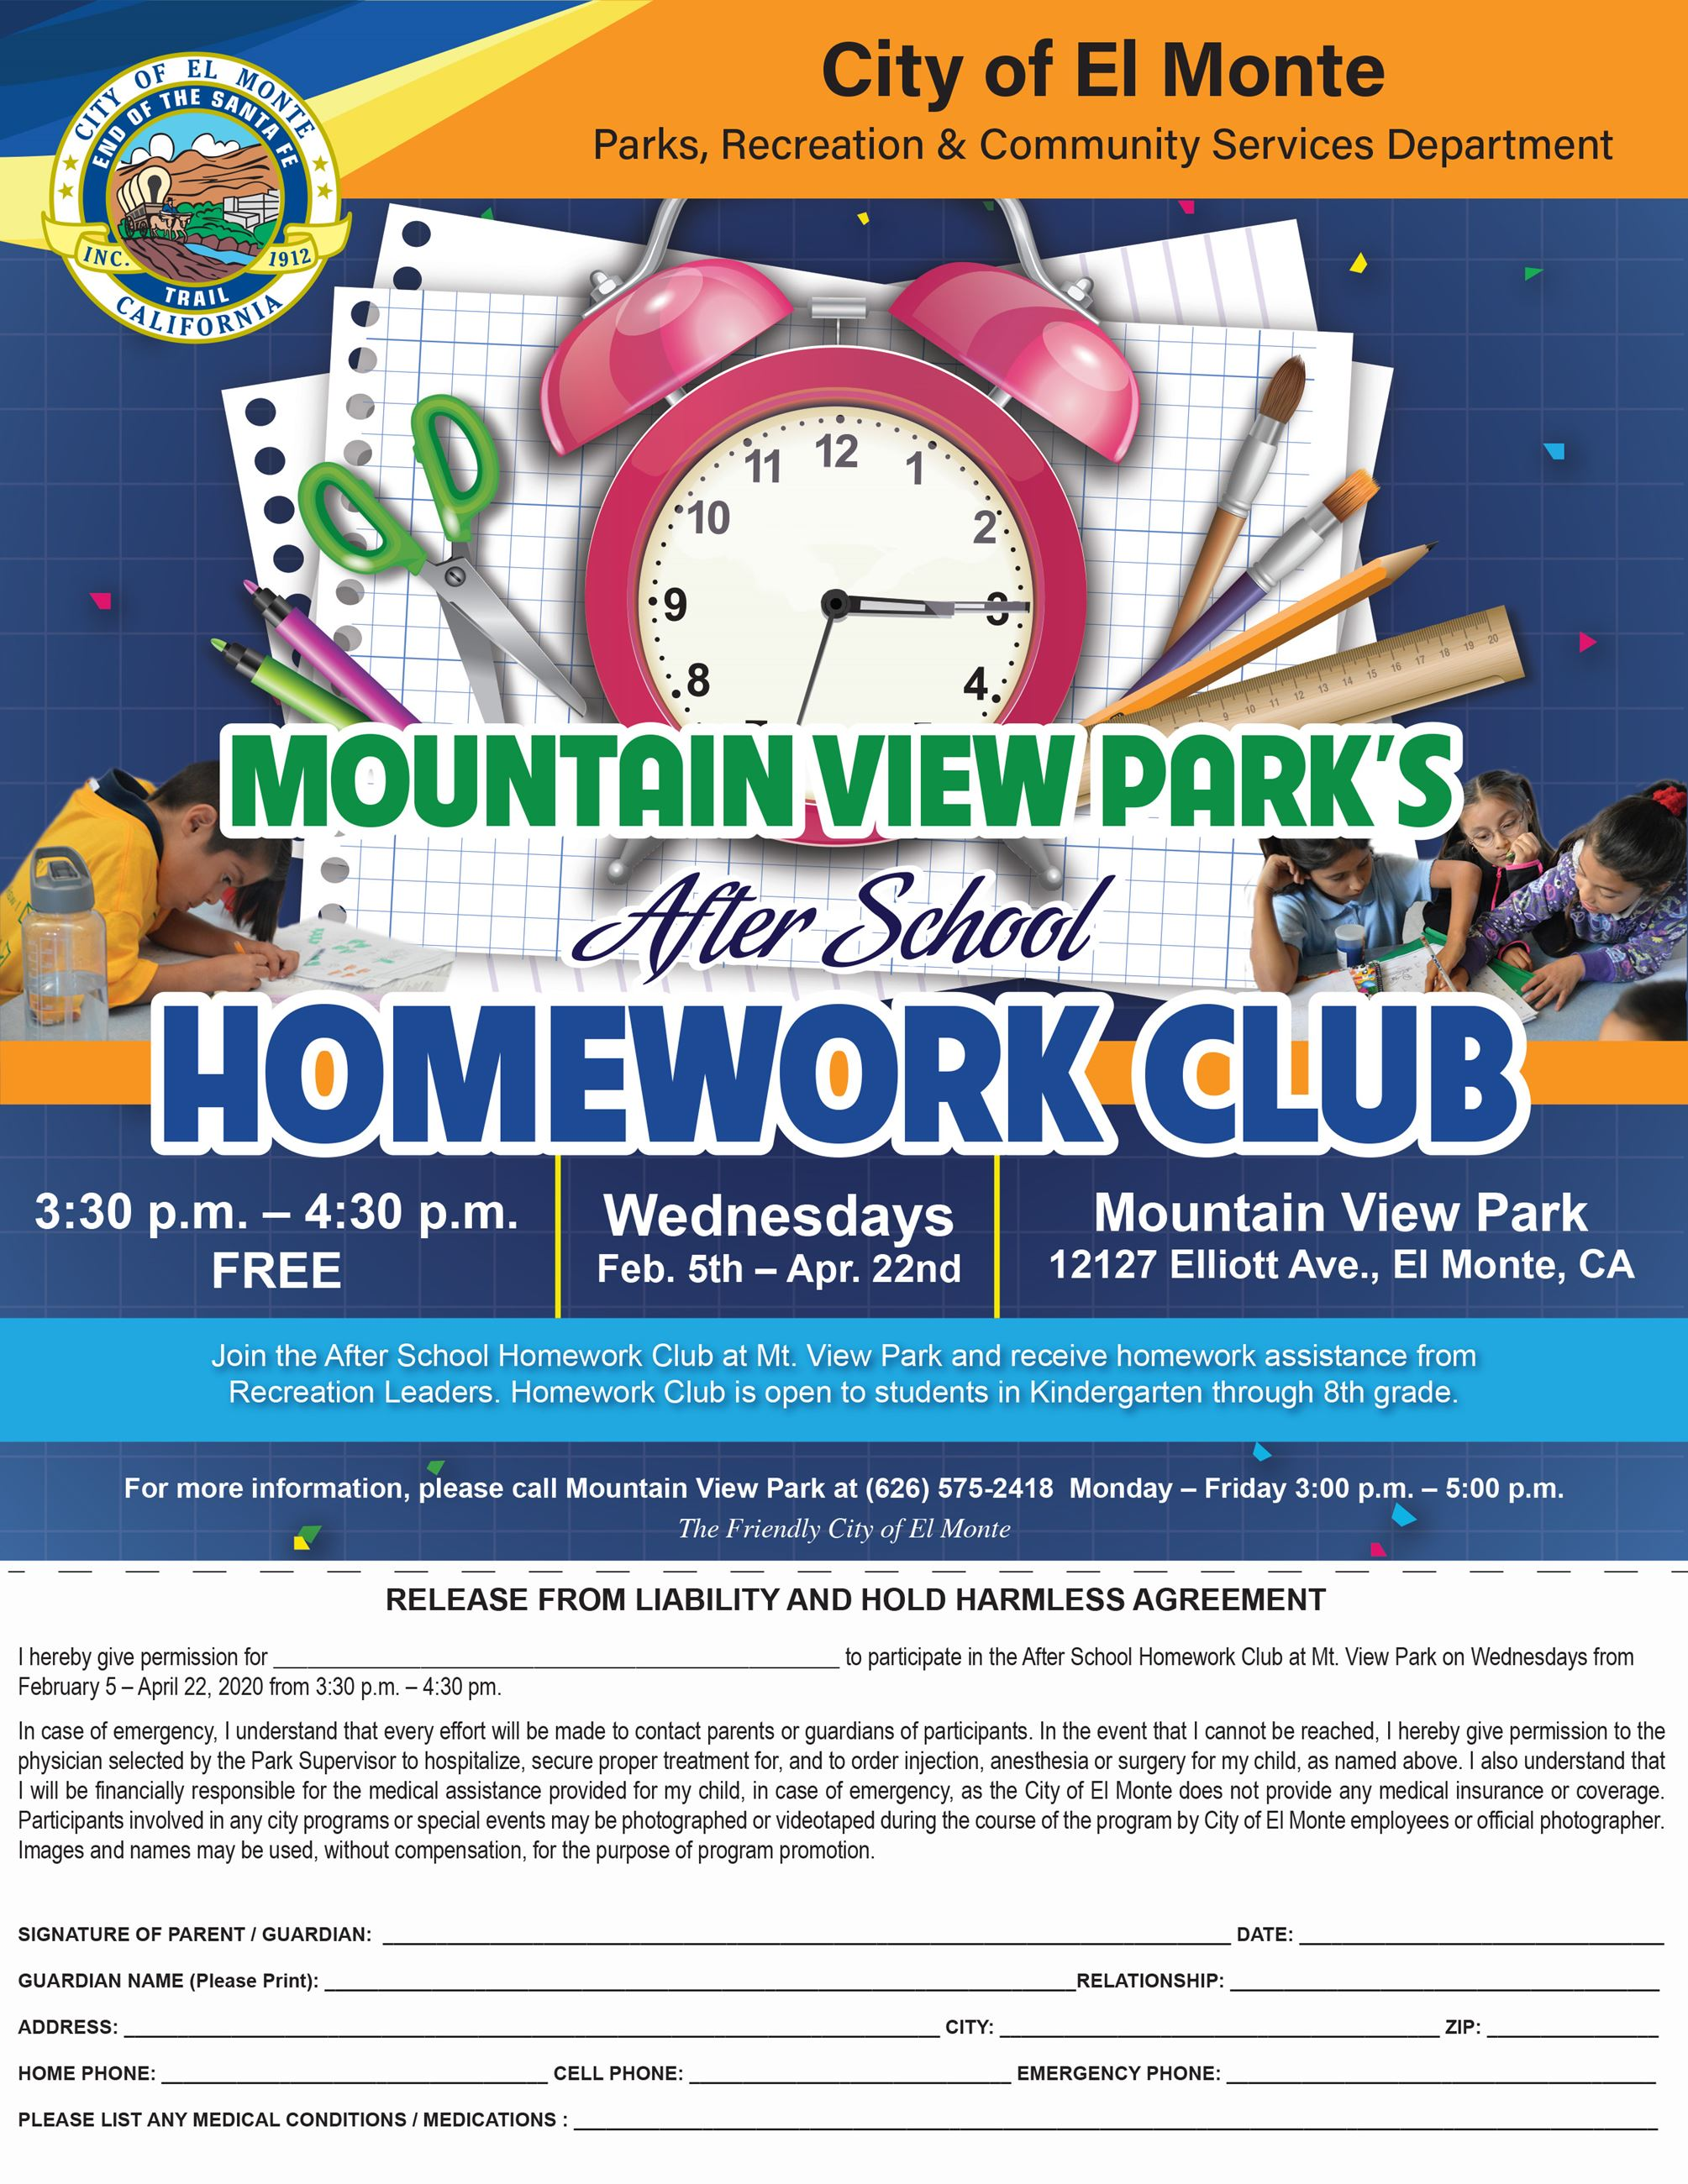 MVP Homework Club Flyer 11062019_edit_02 sample